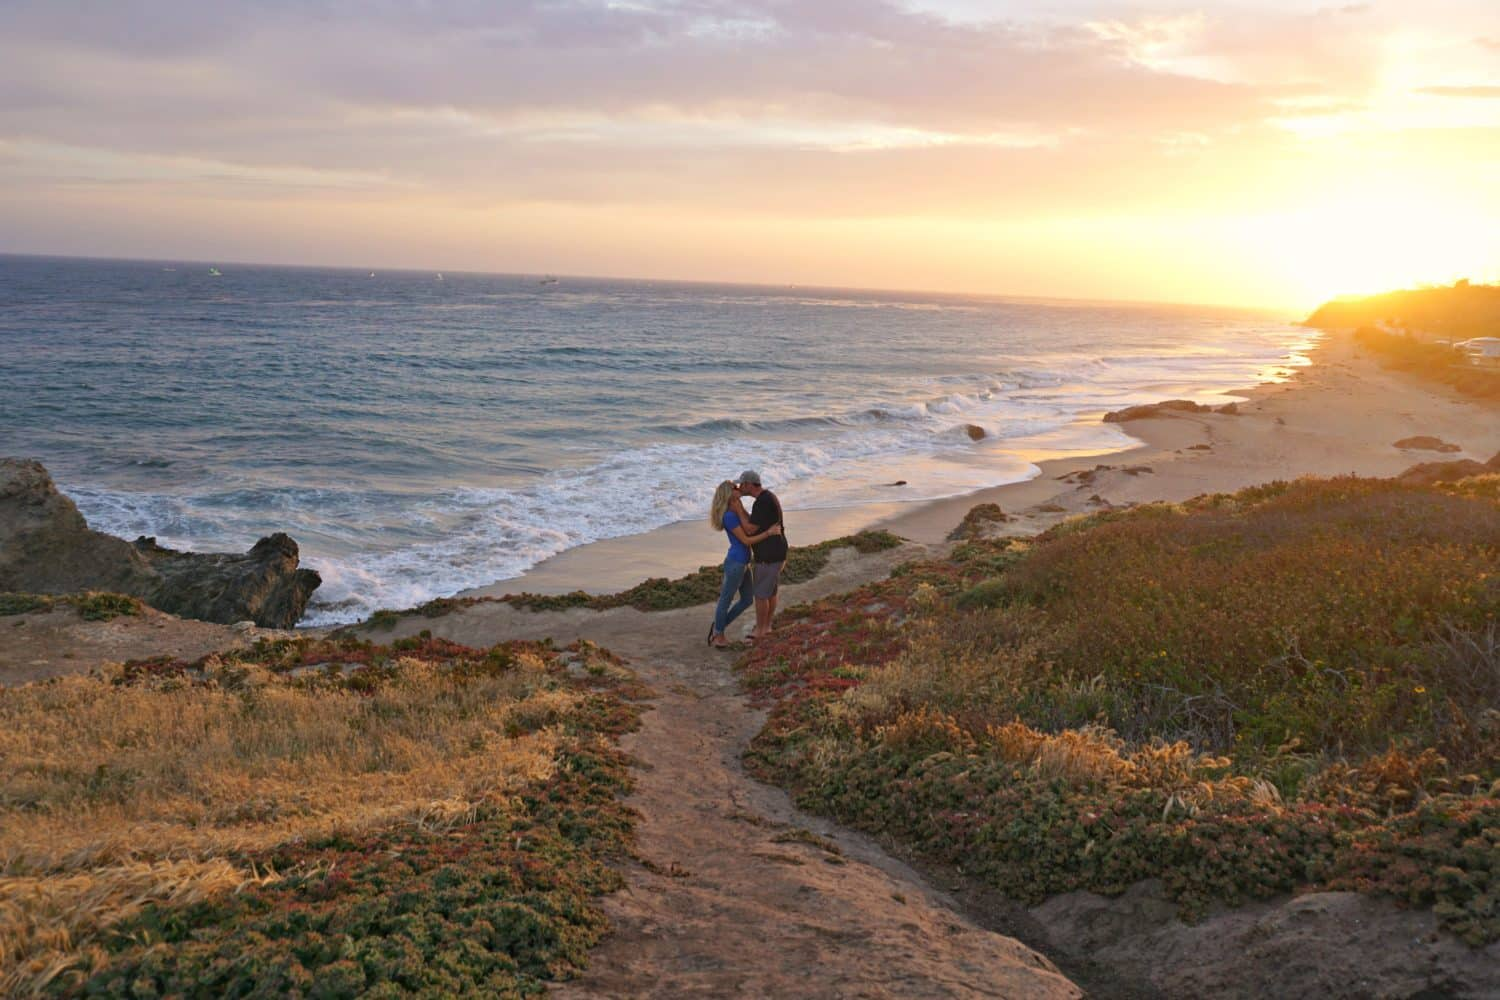 kissing sunset shot at leo carrillo beach in malibu